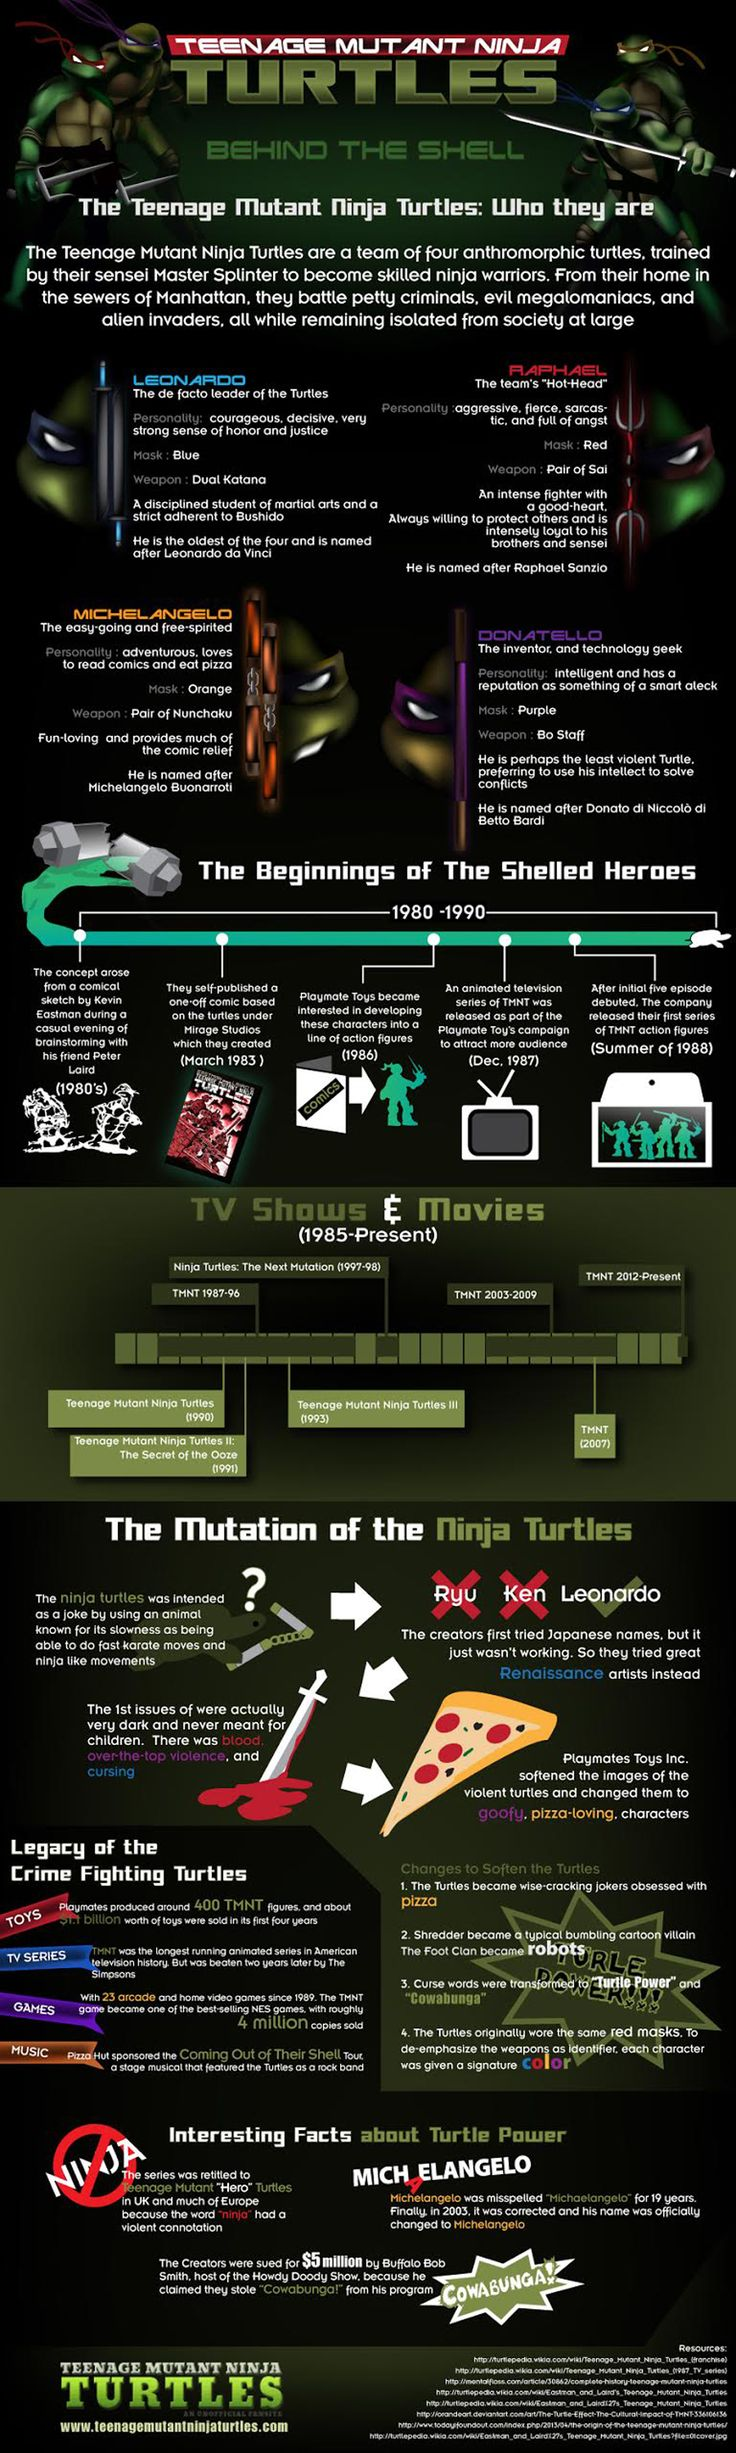 Awesome TMNT Factoids in a Infographic Take a trip down memory lane and tell us what you think.